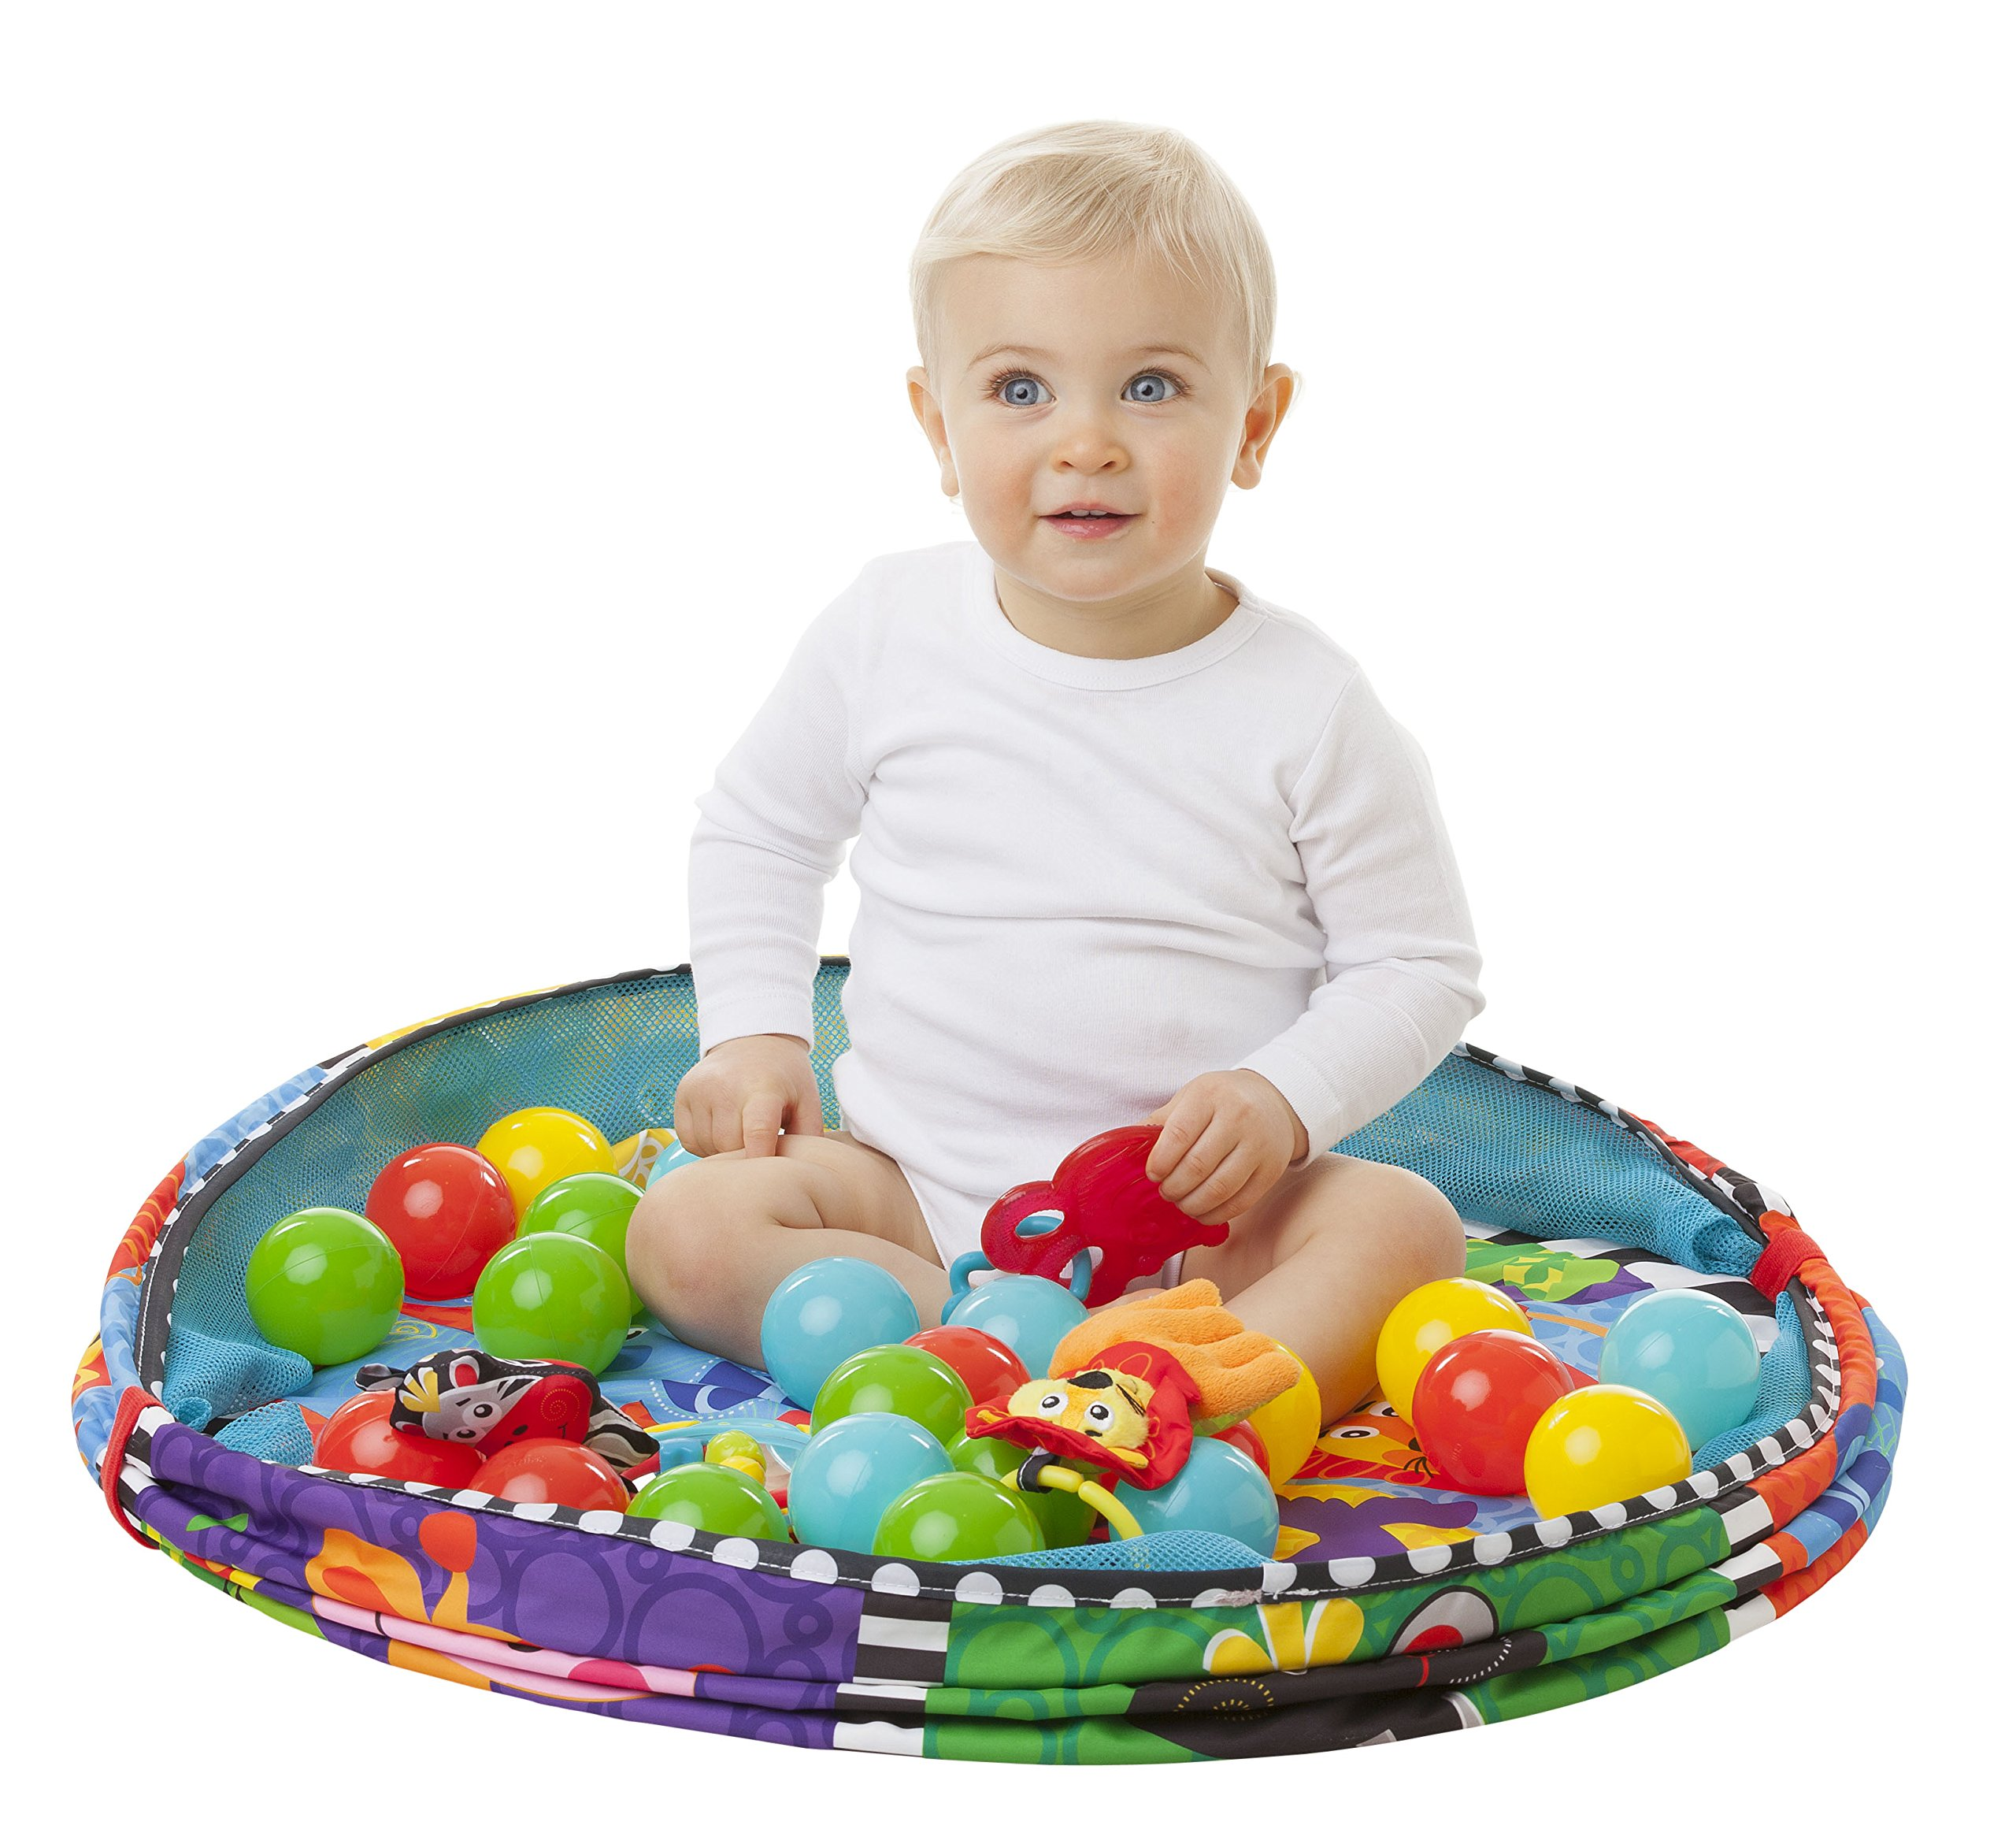 Playgro Ball Activity Nest Gym for baby infant toddler child with Bestway Up, In and Over Splash and Play 100 Play Balls